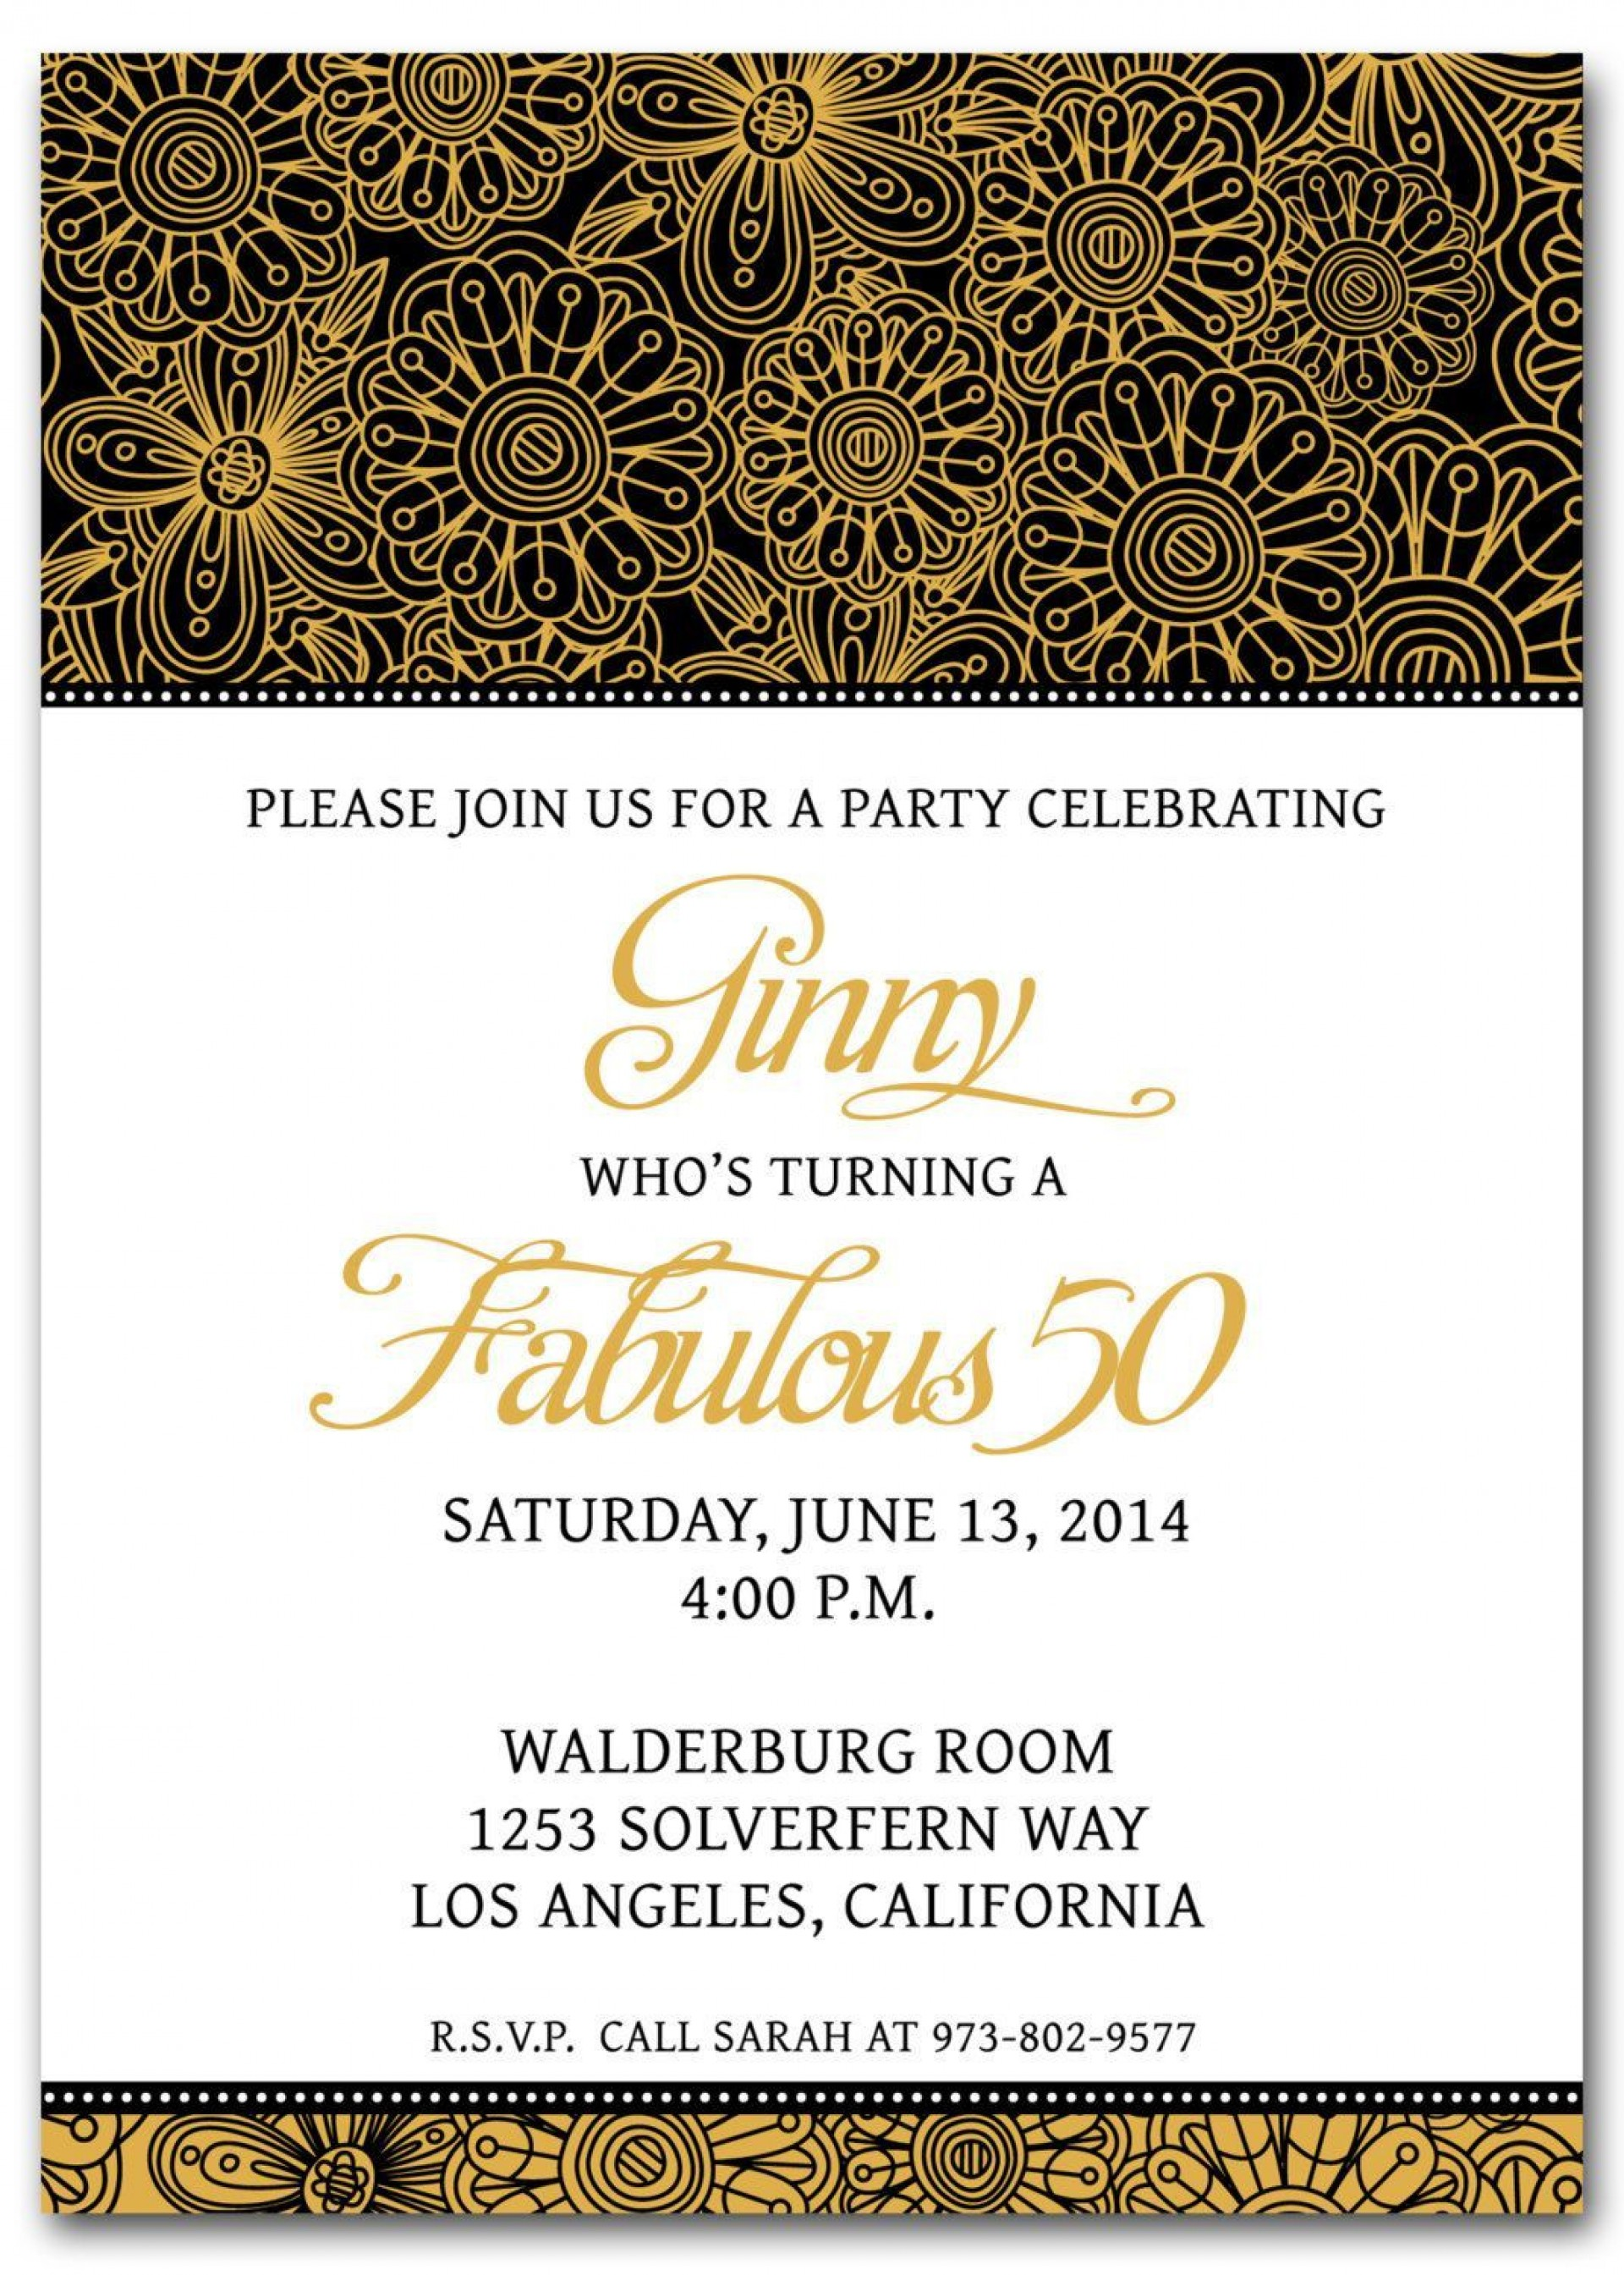 002 Outstanding 50th Birthday Invitation Template Image  For Him Microsoft Word Free1920